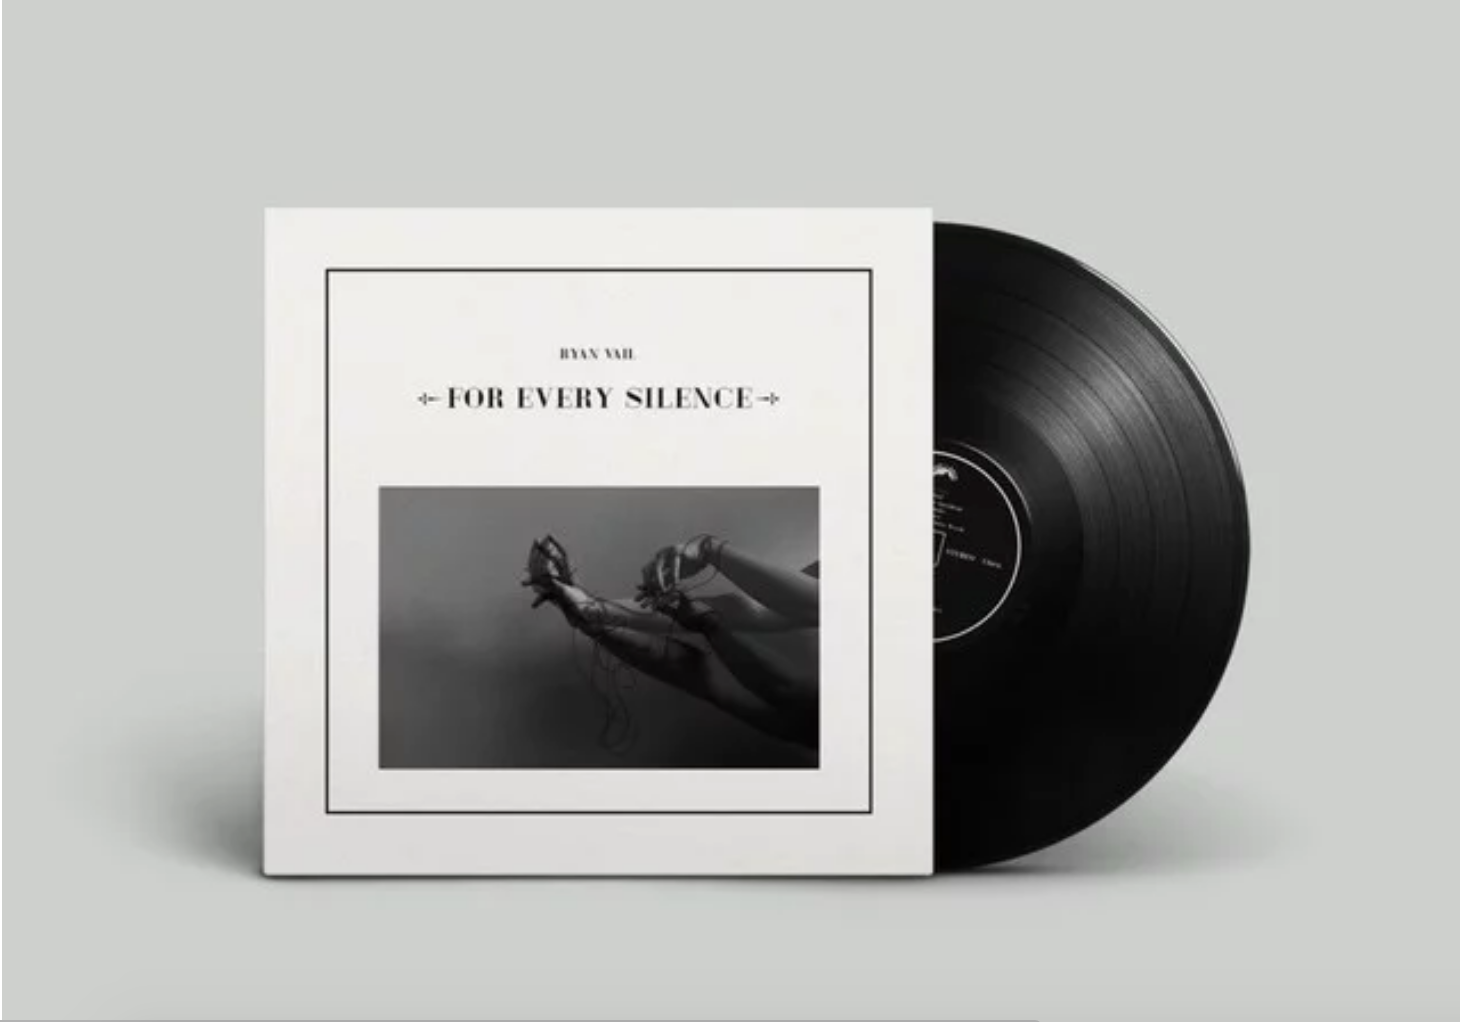 For Every Silence Vinyl - Quiet Arch